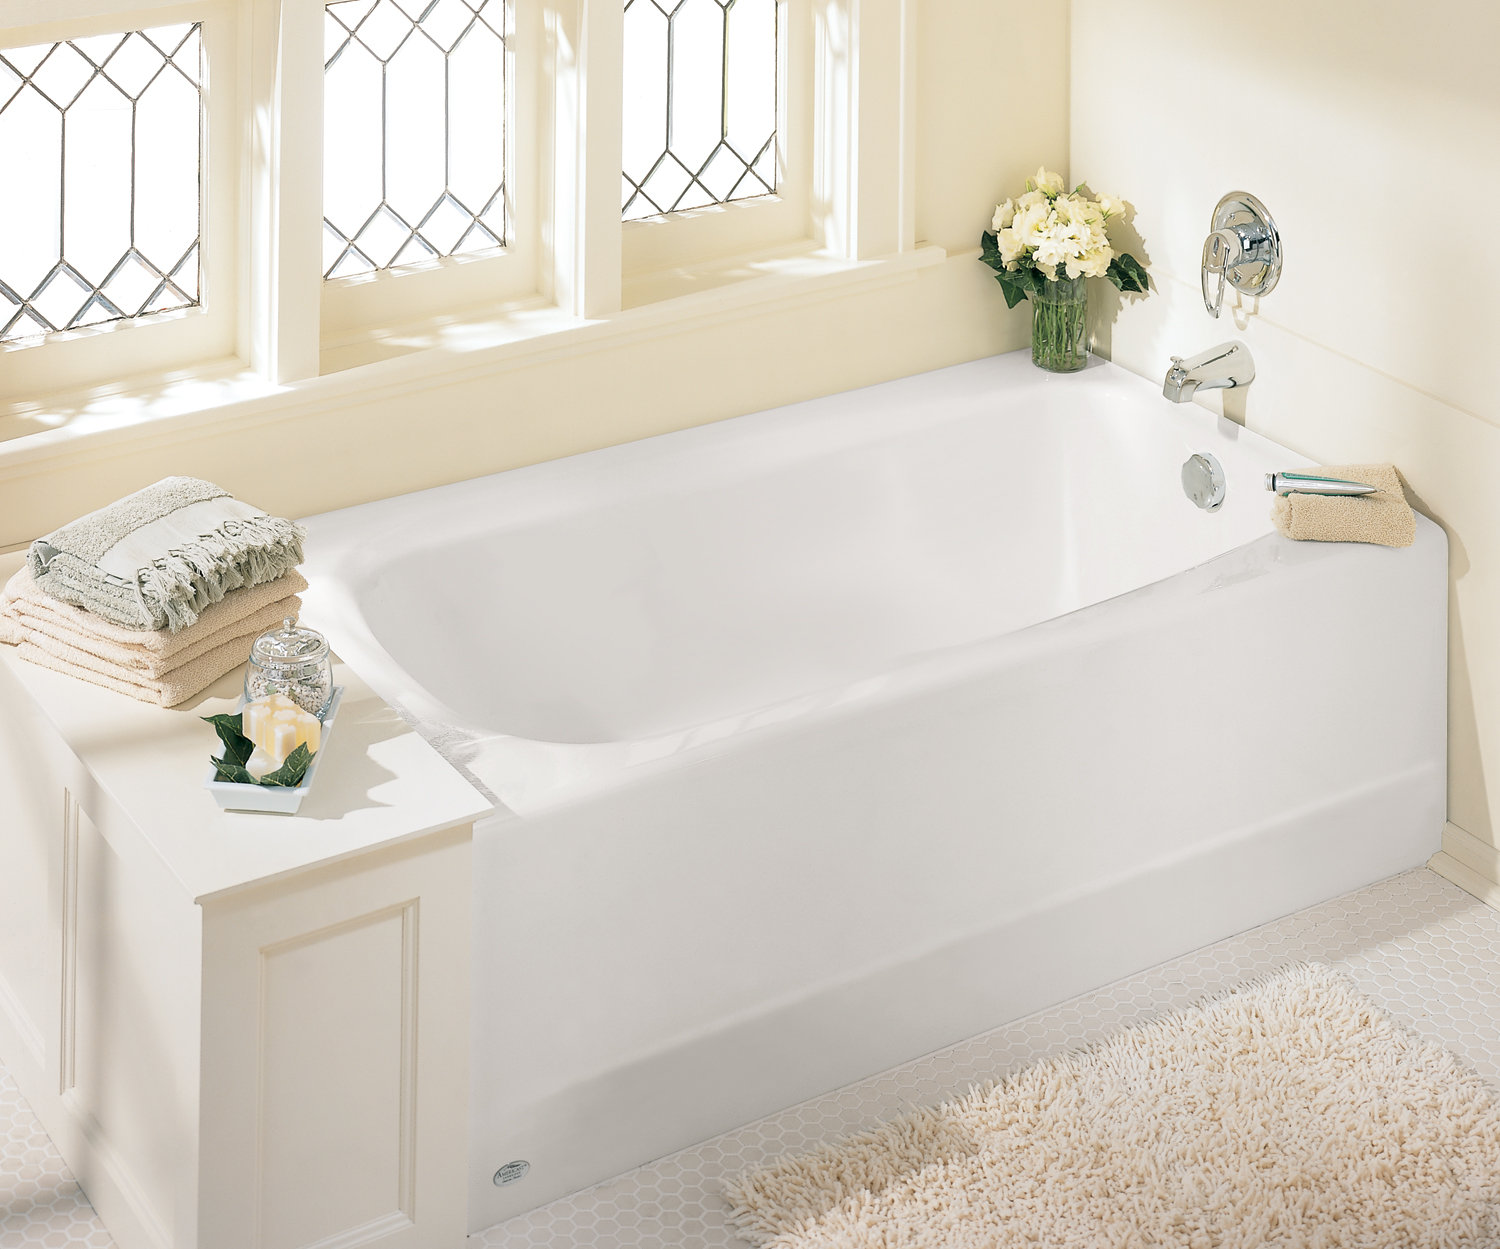 American Standard 2461 002 020 Cambridge 5 Feet Bath Tub